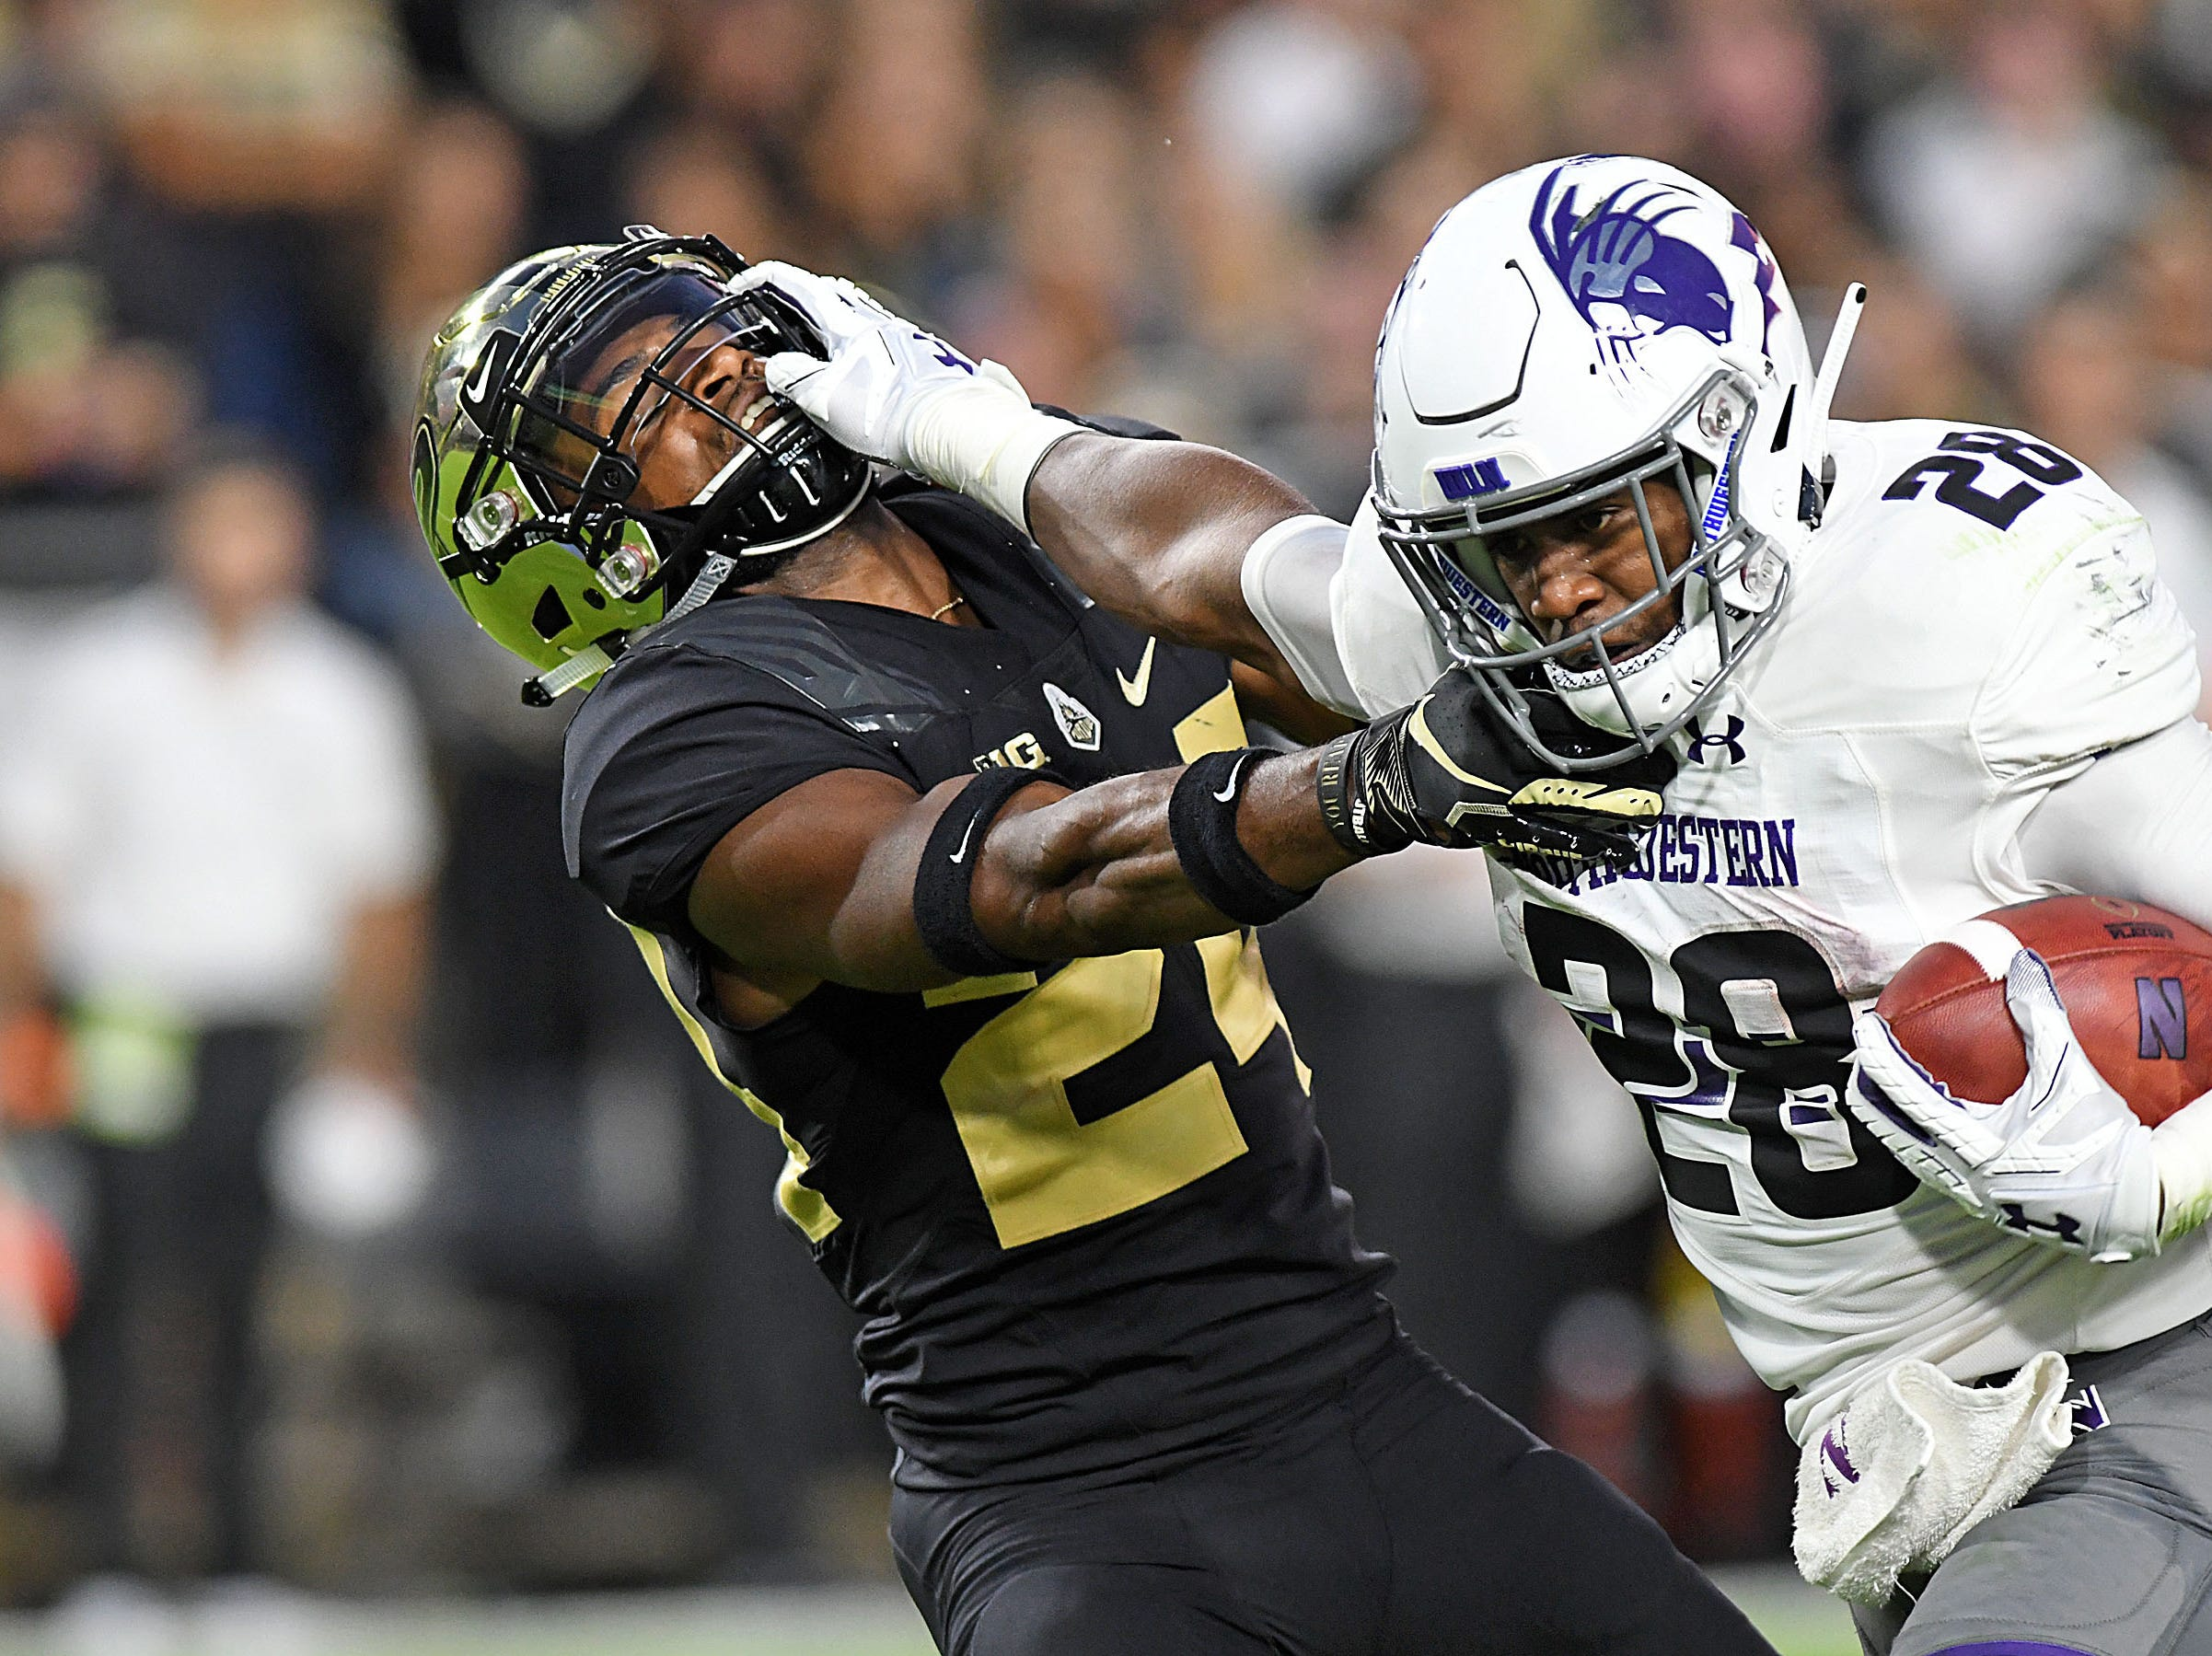 Aug 30, 2018; West Lafayette, IN, USA; Northwestern Wildcats running back Jeremy Larkin (28) stiff arms  Purdue Boilermaker corner back Tim Carson (24)   in the first half  at Ross-Ade Stadium. Mandatory Credit: Thomas J. Russo-USA TODAY Sports